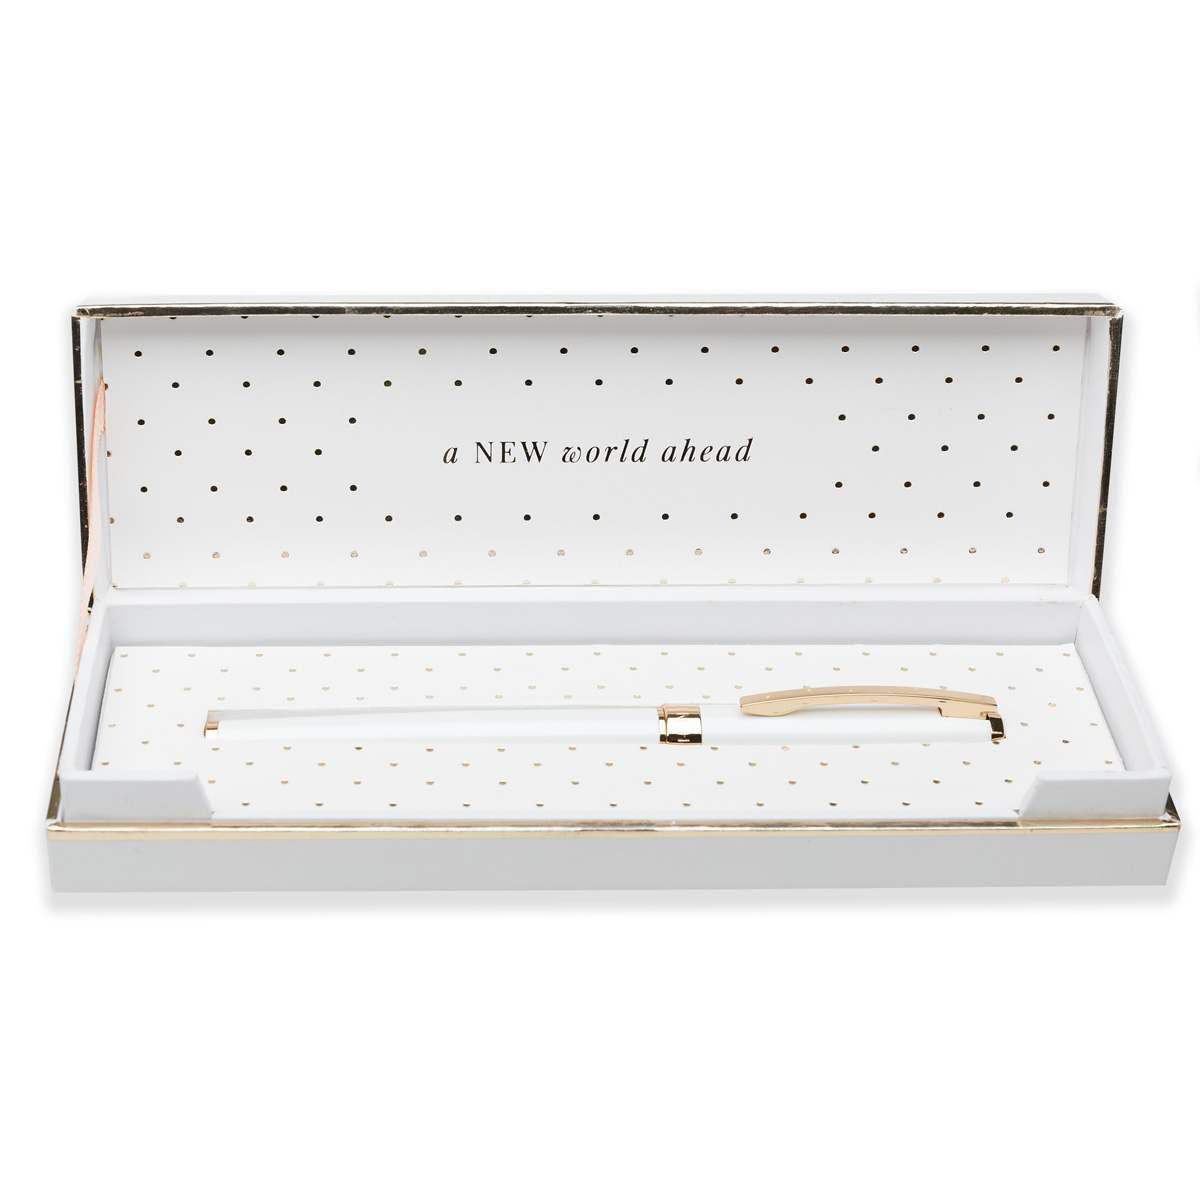 Rollerball Pen – Pearl White – a NEW world ahead